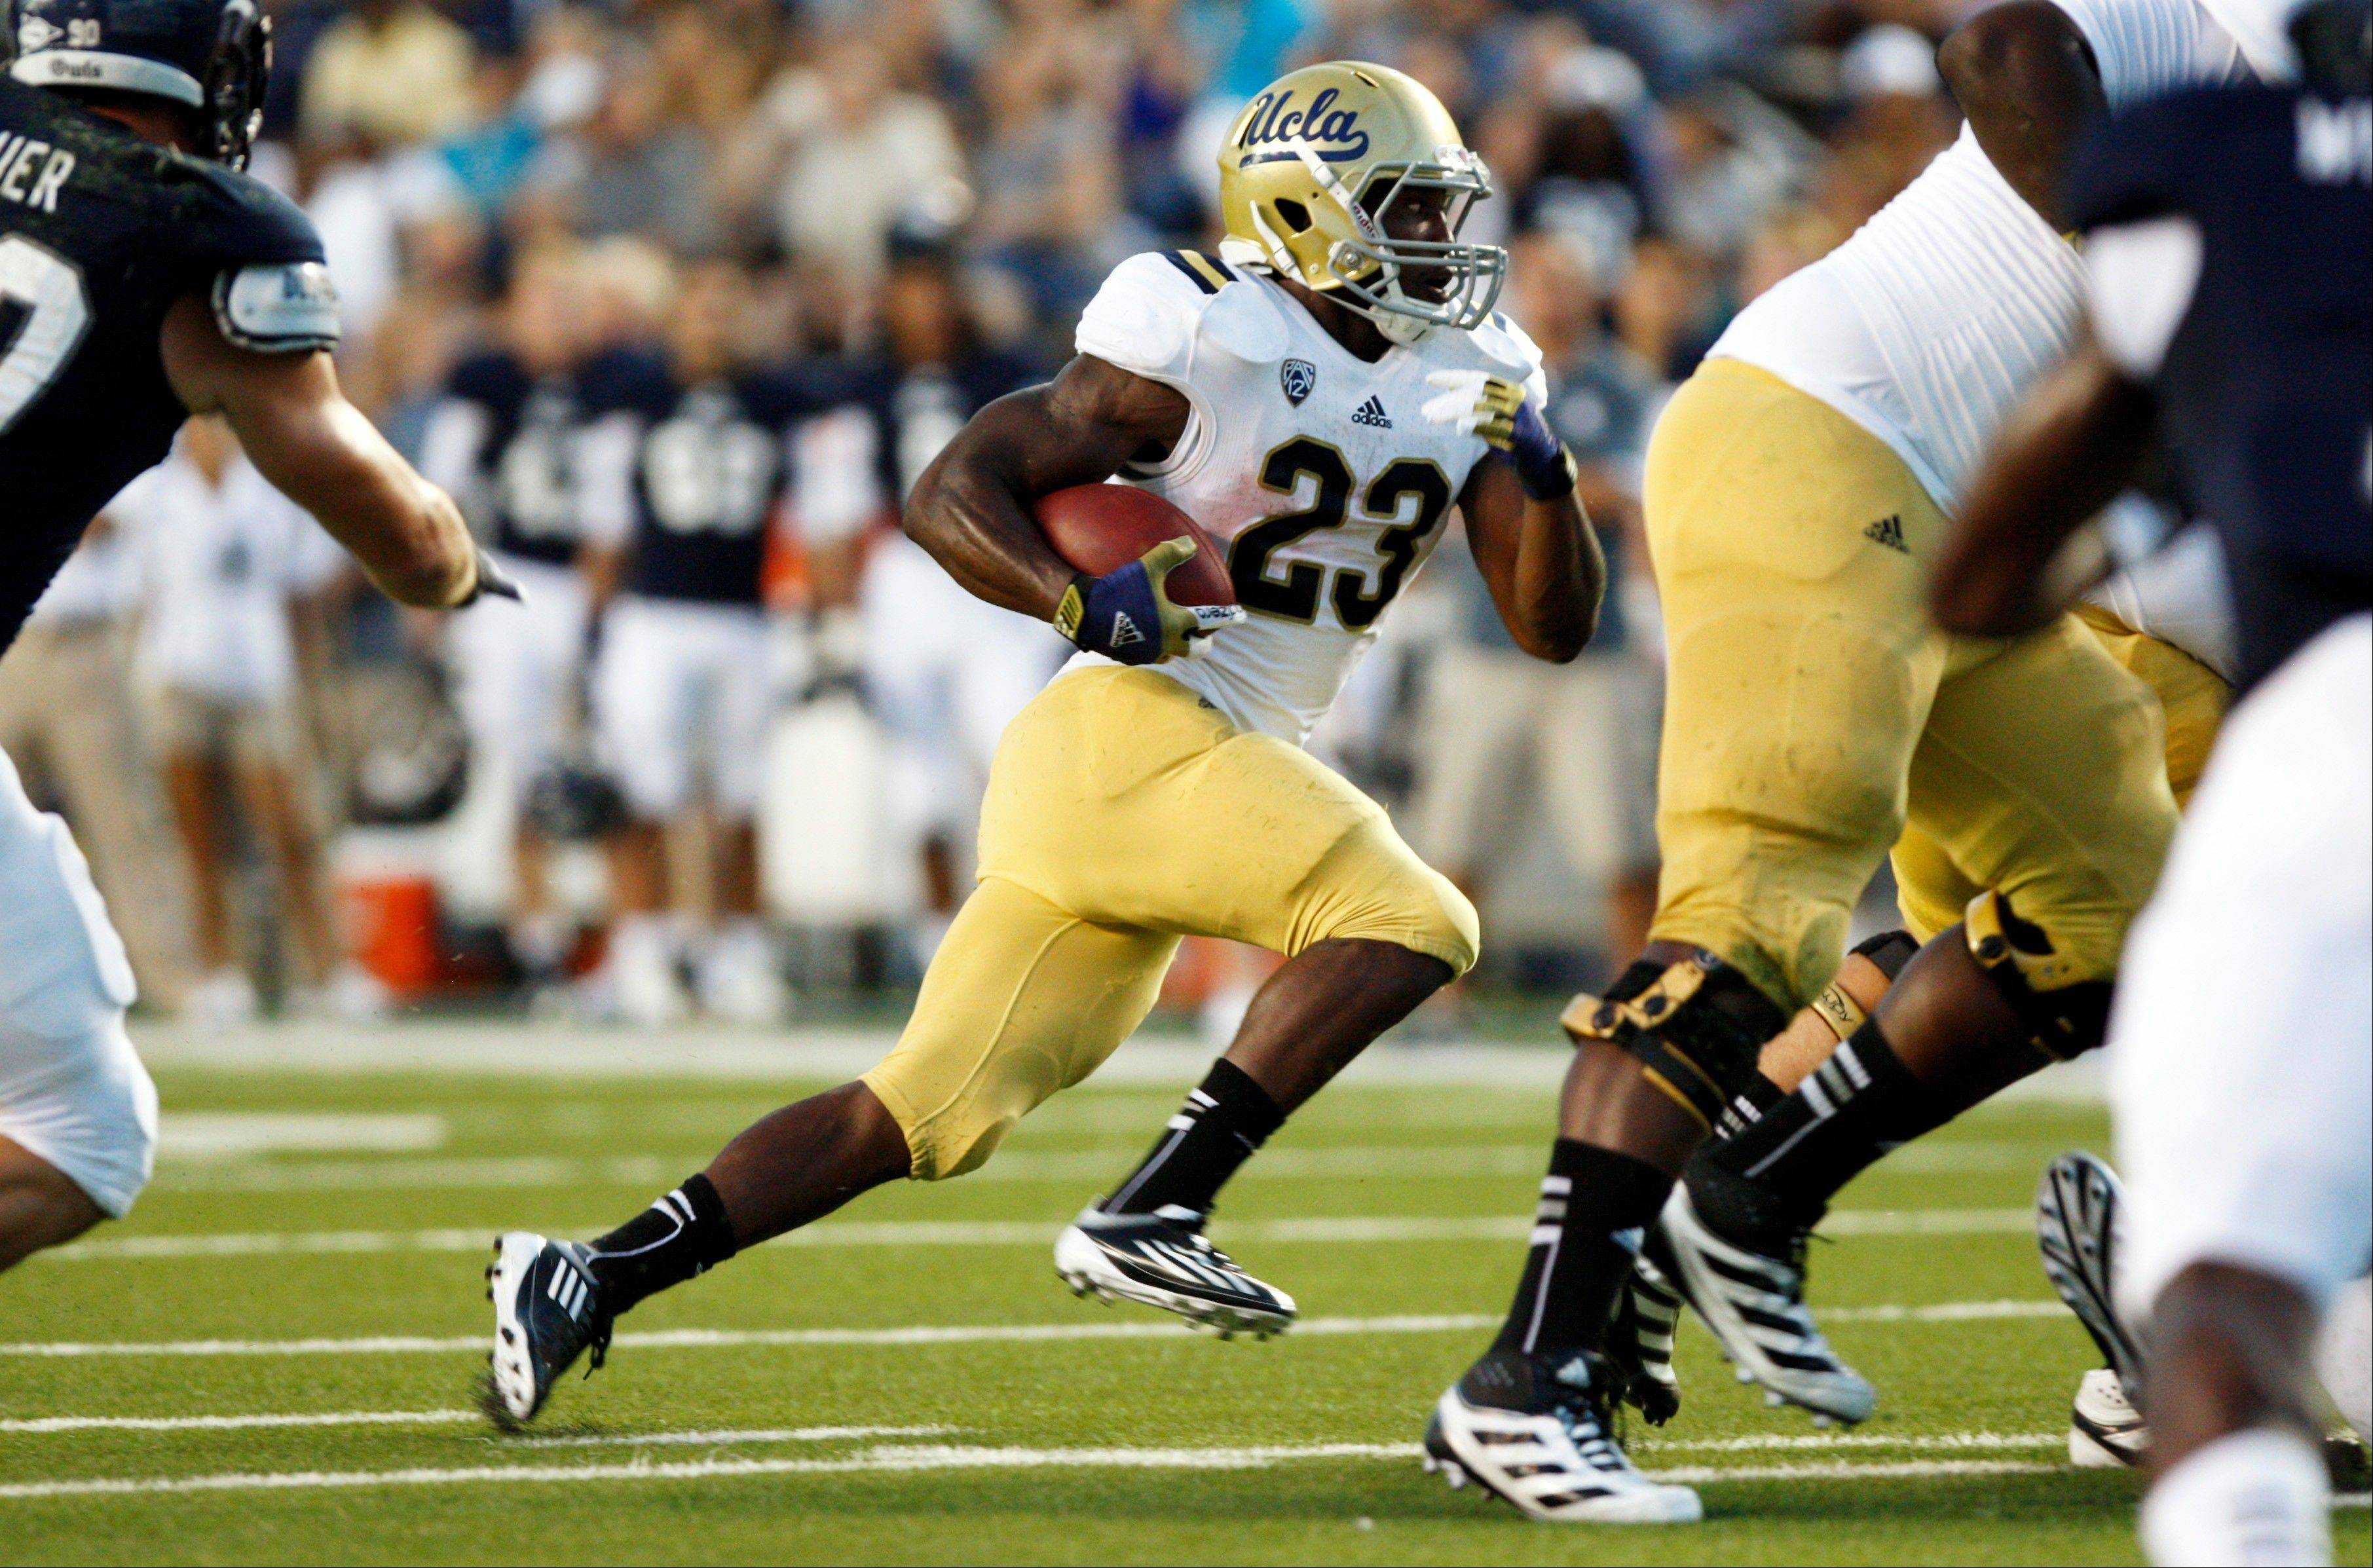 UCLA running back Johnathan Franklin (23) gains yards against Rice during the first half Thursday in Houston.